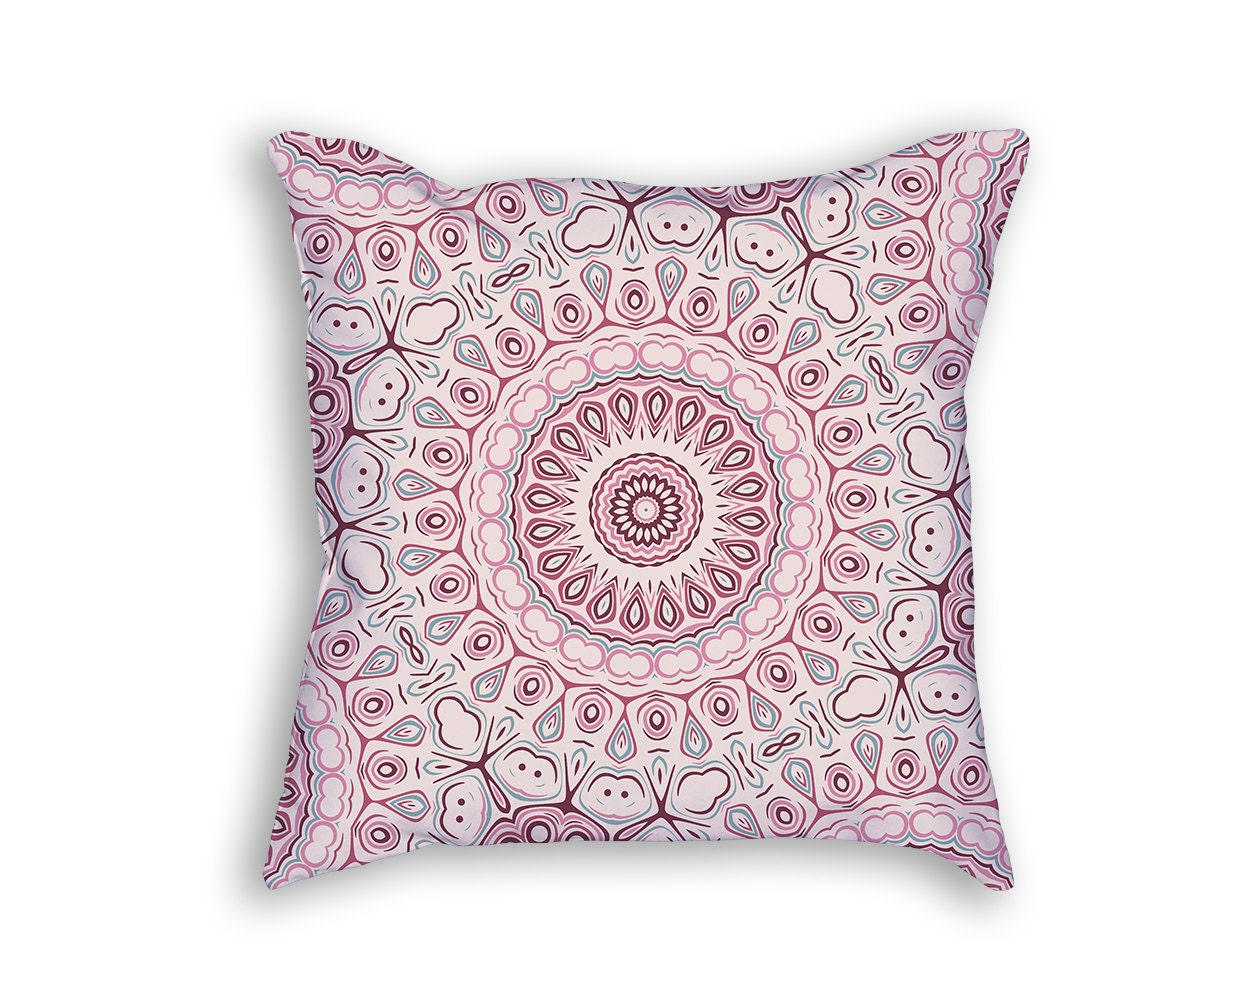 Dusty Rose Inspired Mandala Throw Pillow by ColorlightPrintables